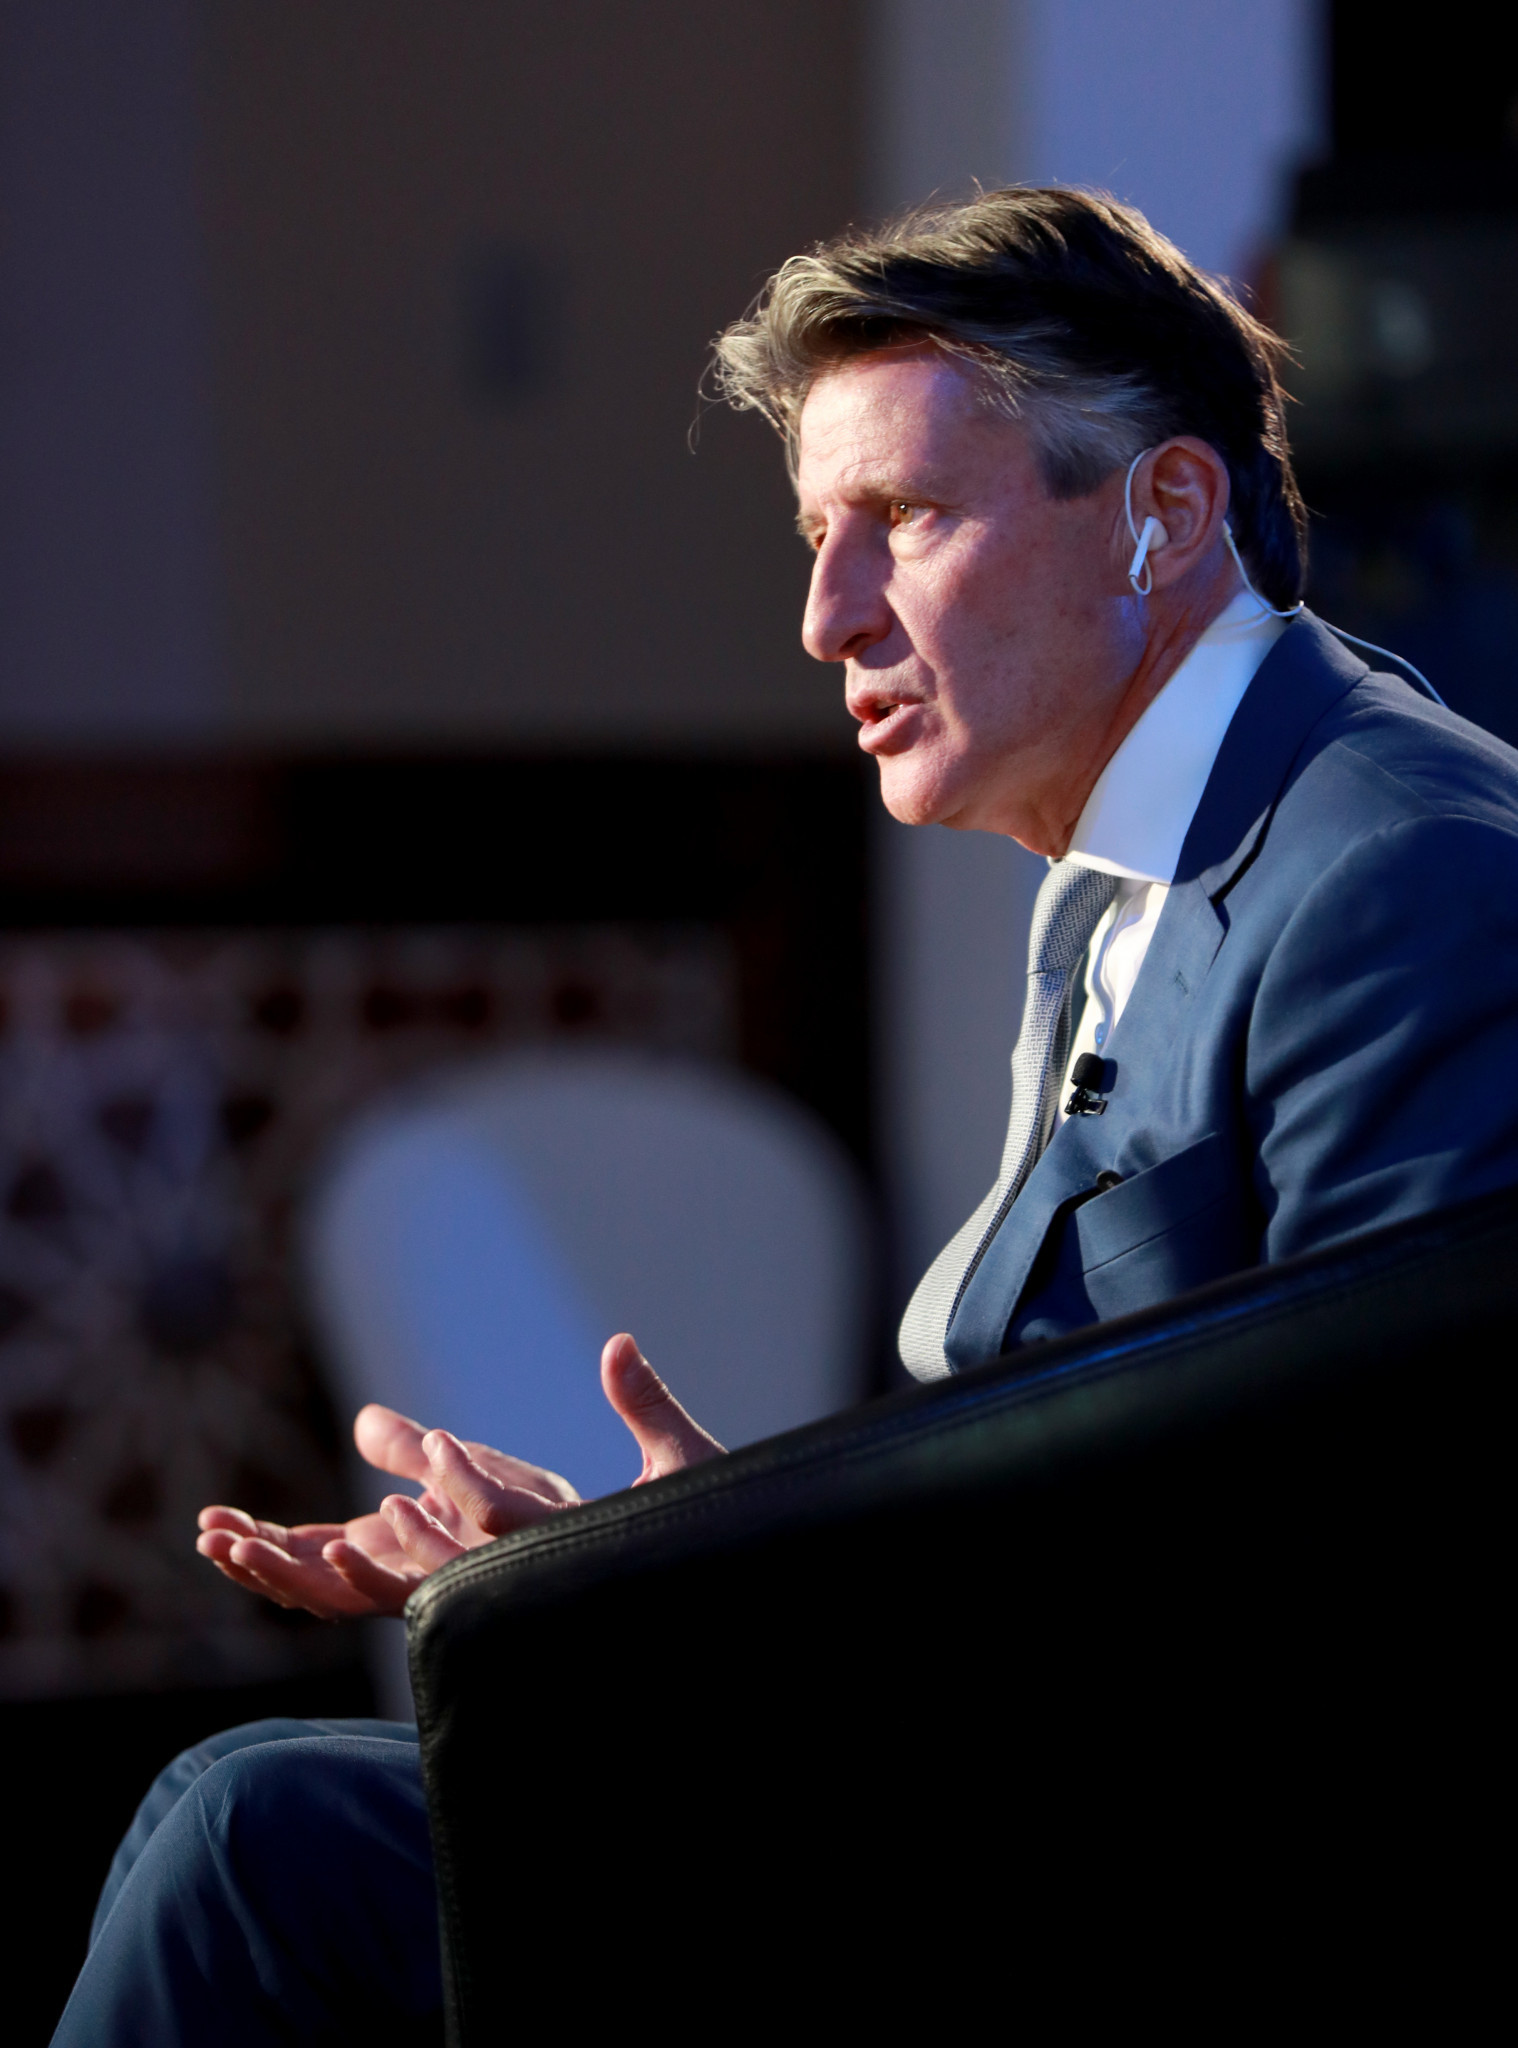 IAAF President Sebastian Coe believes the rules are needed to create a level playing field ©Getty Images